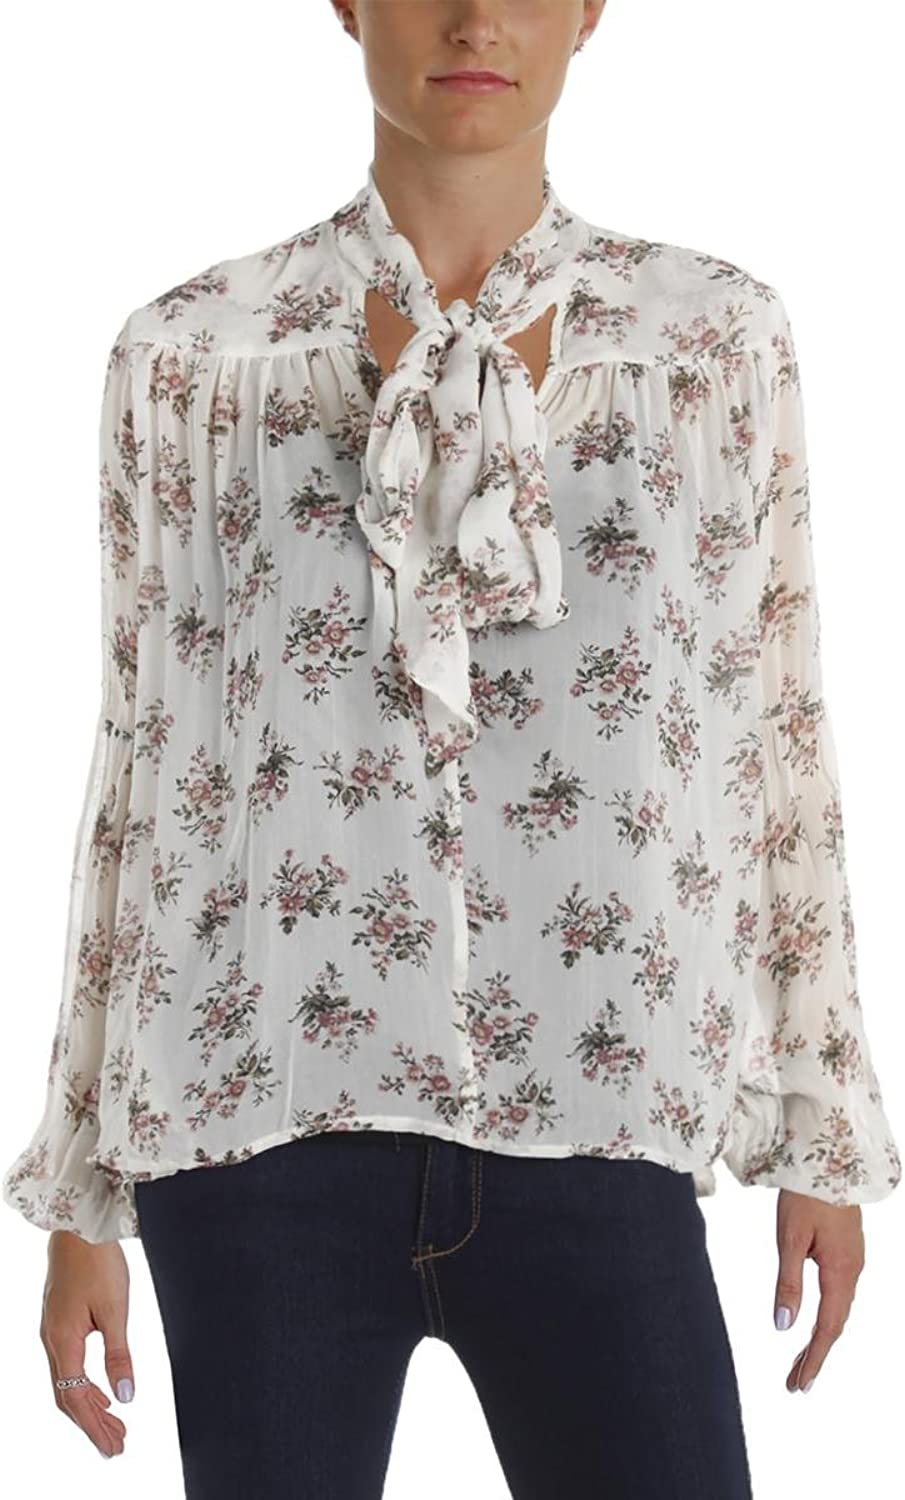 Denim & Supply Ralph Lauren Gauze Top (Euclid Floral Cream Combo, XS)